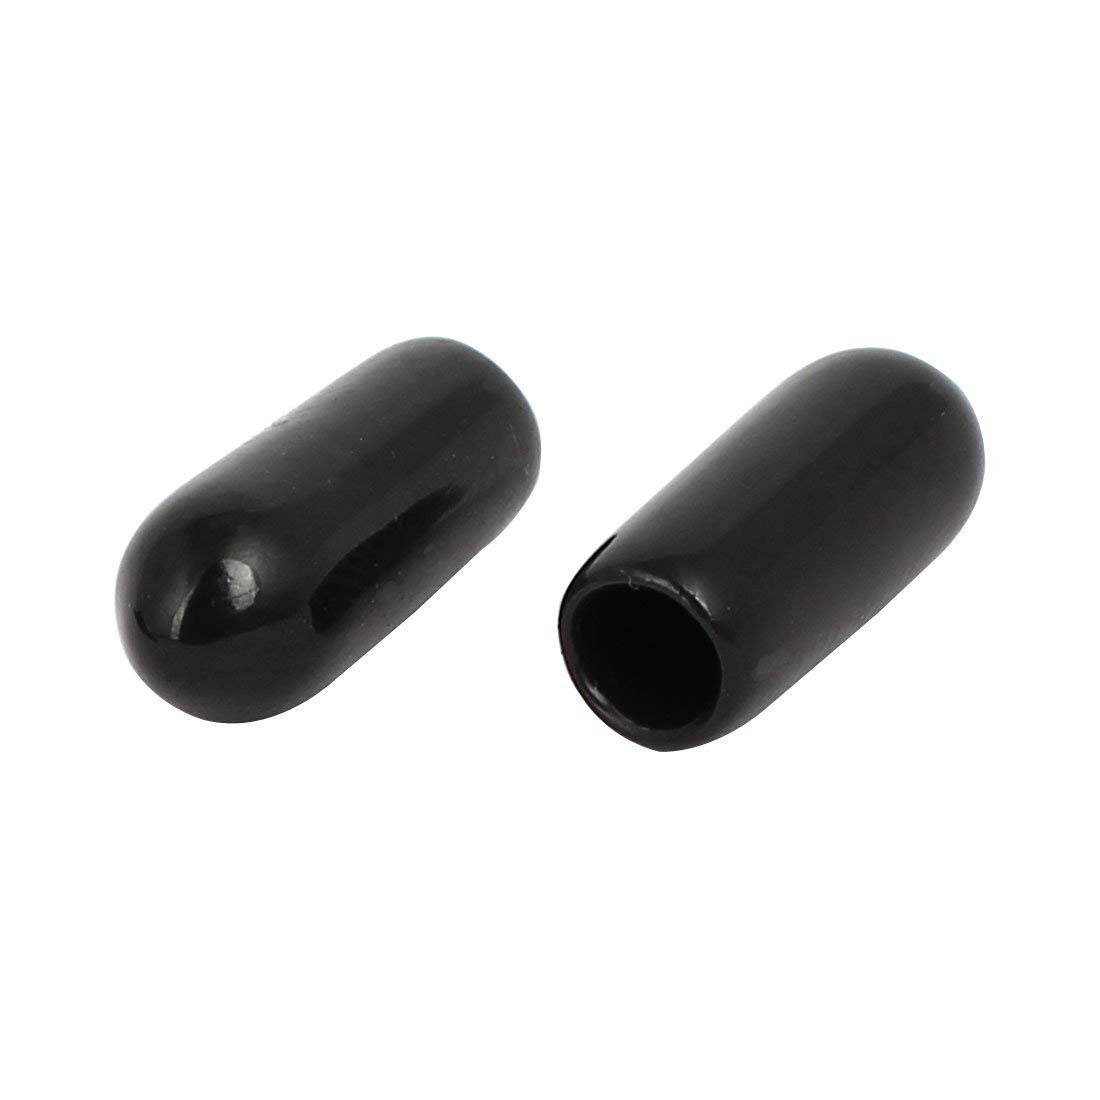 Yohii 100Pcs 4mm//0.157 Inch Inner Dia Rubber Hose End Cap Screw Thread Protector Cover Black